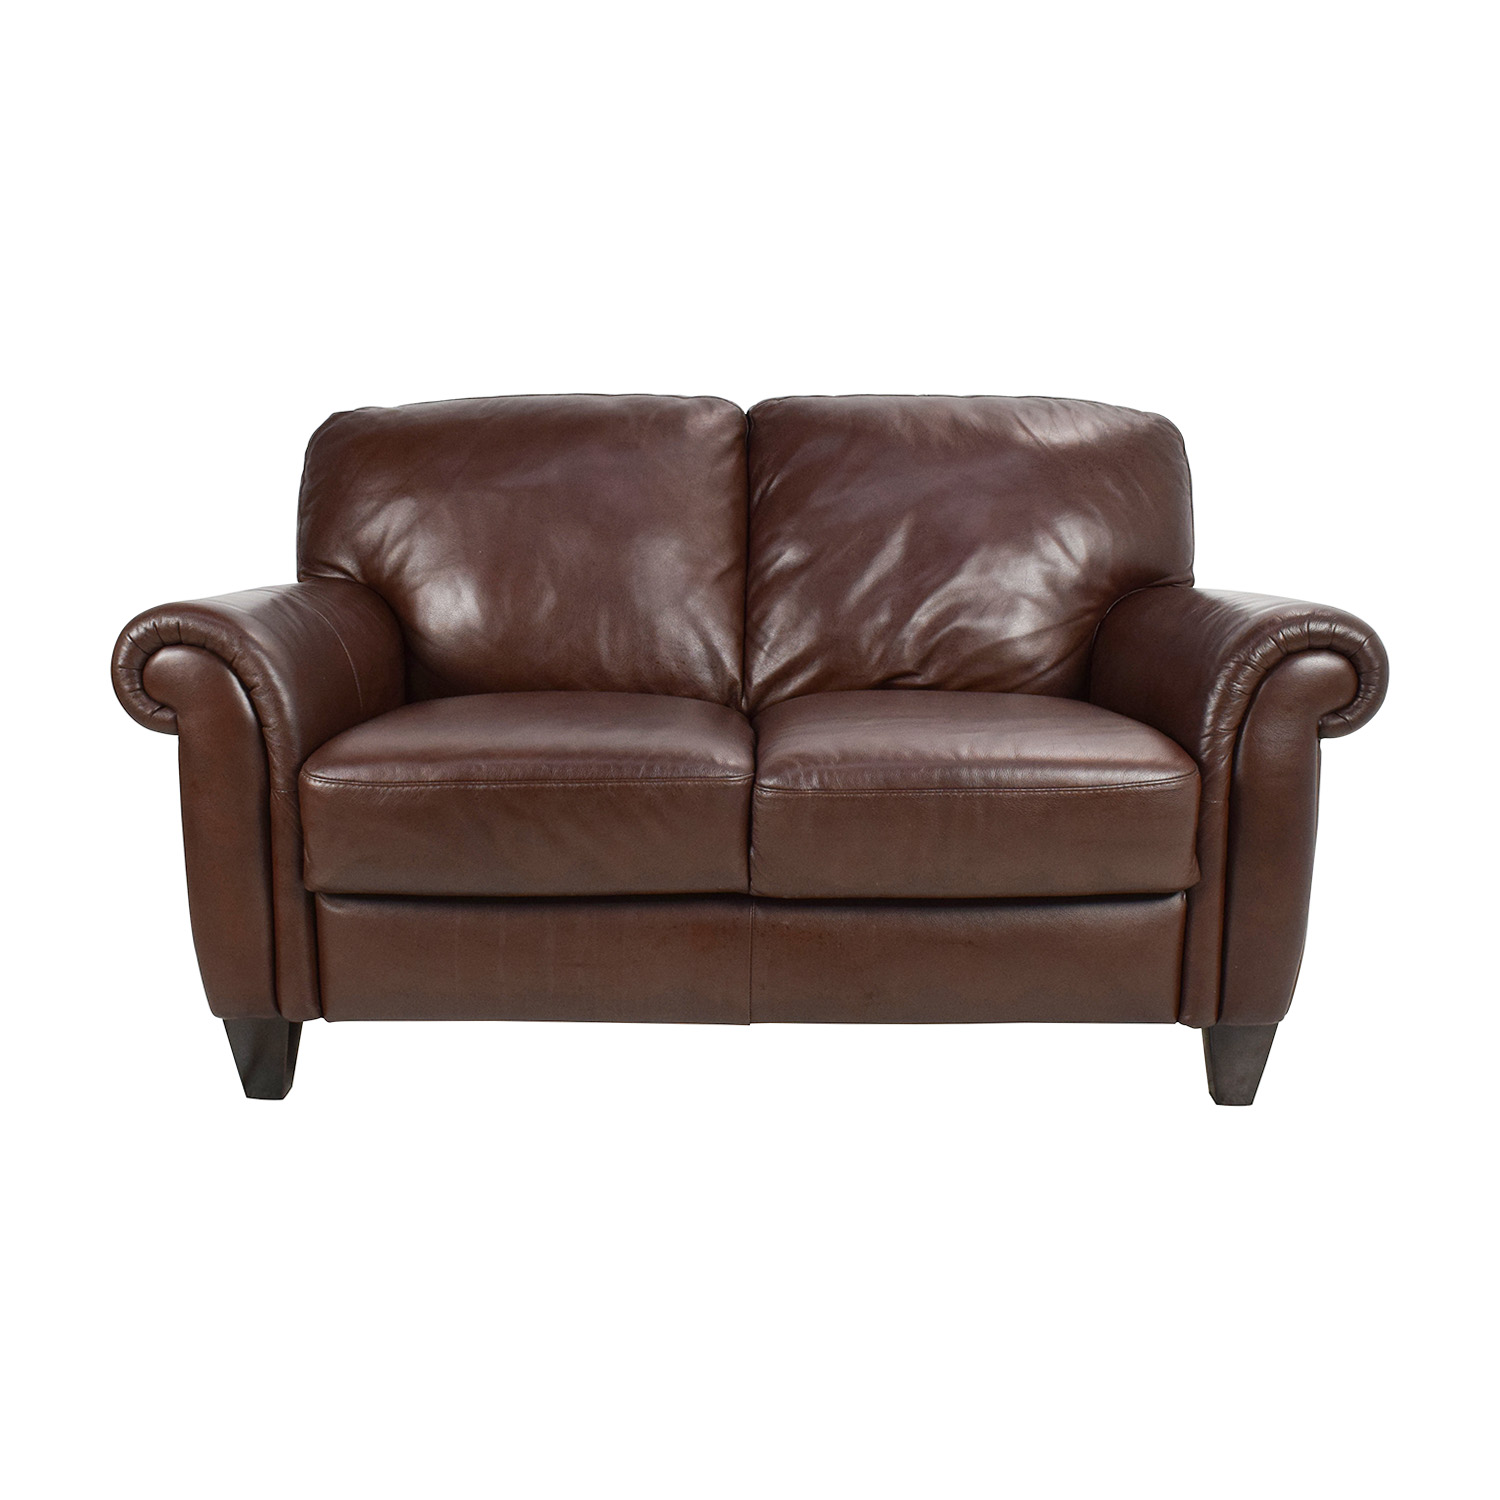 50 Off Brown Roll Arm Leather Loveseat Sofas